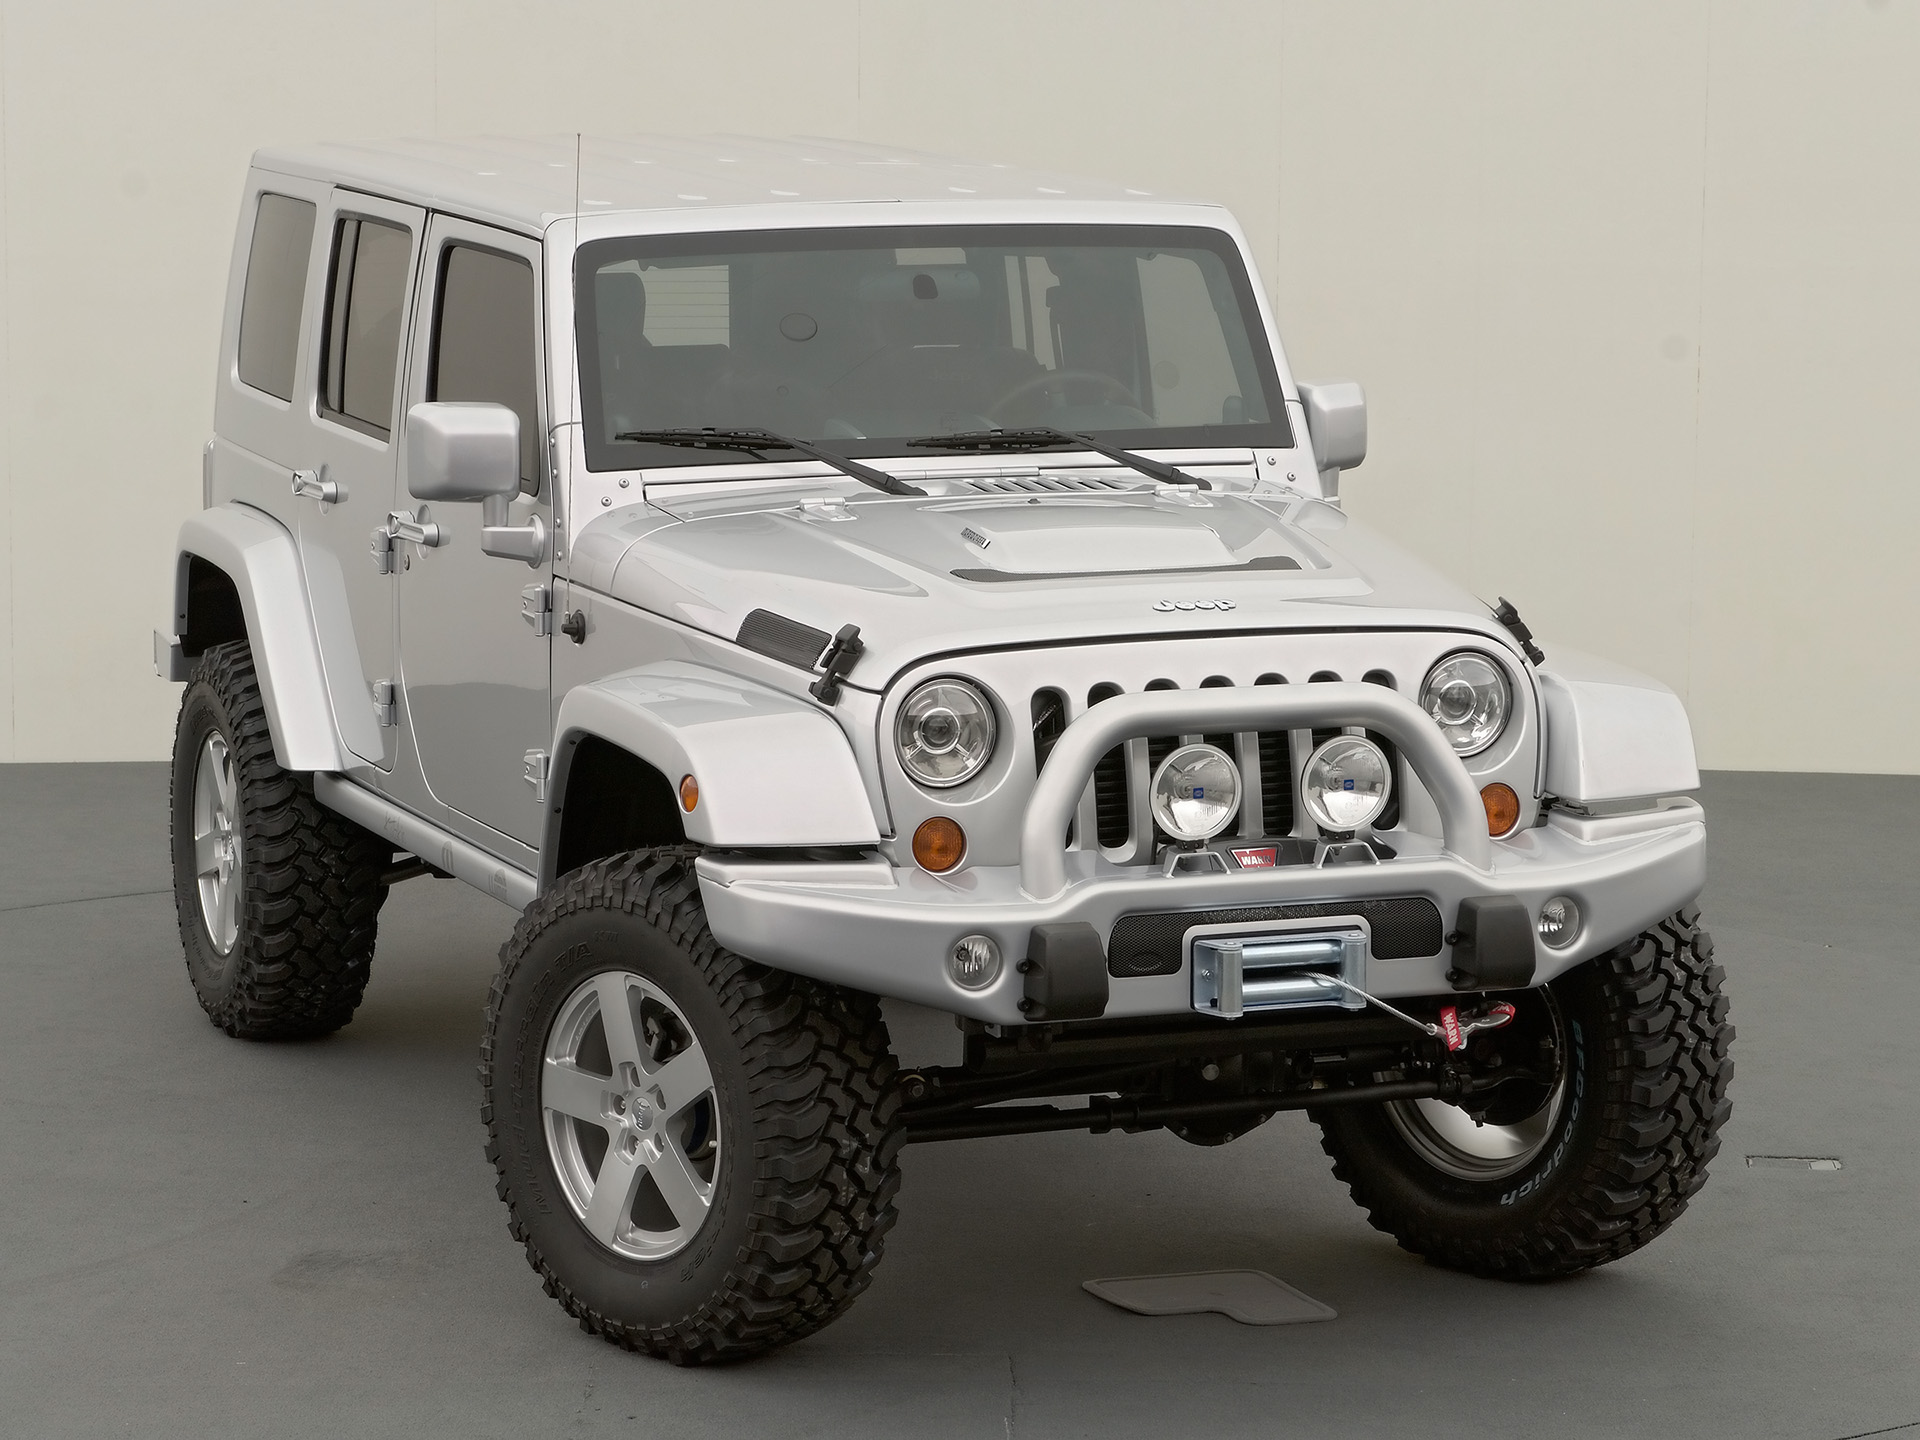 Jeep Wrangler 2006 photo - 3